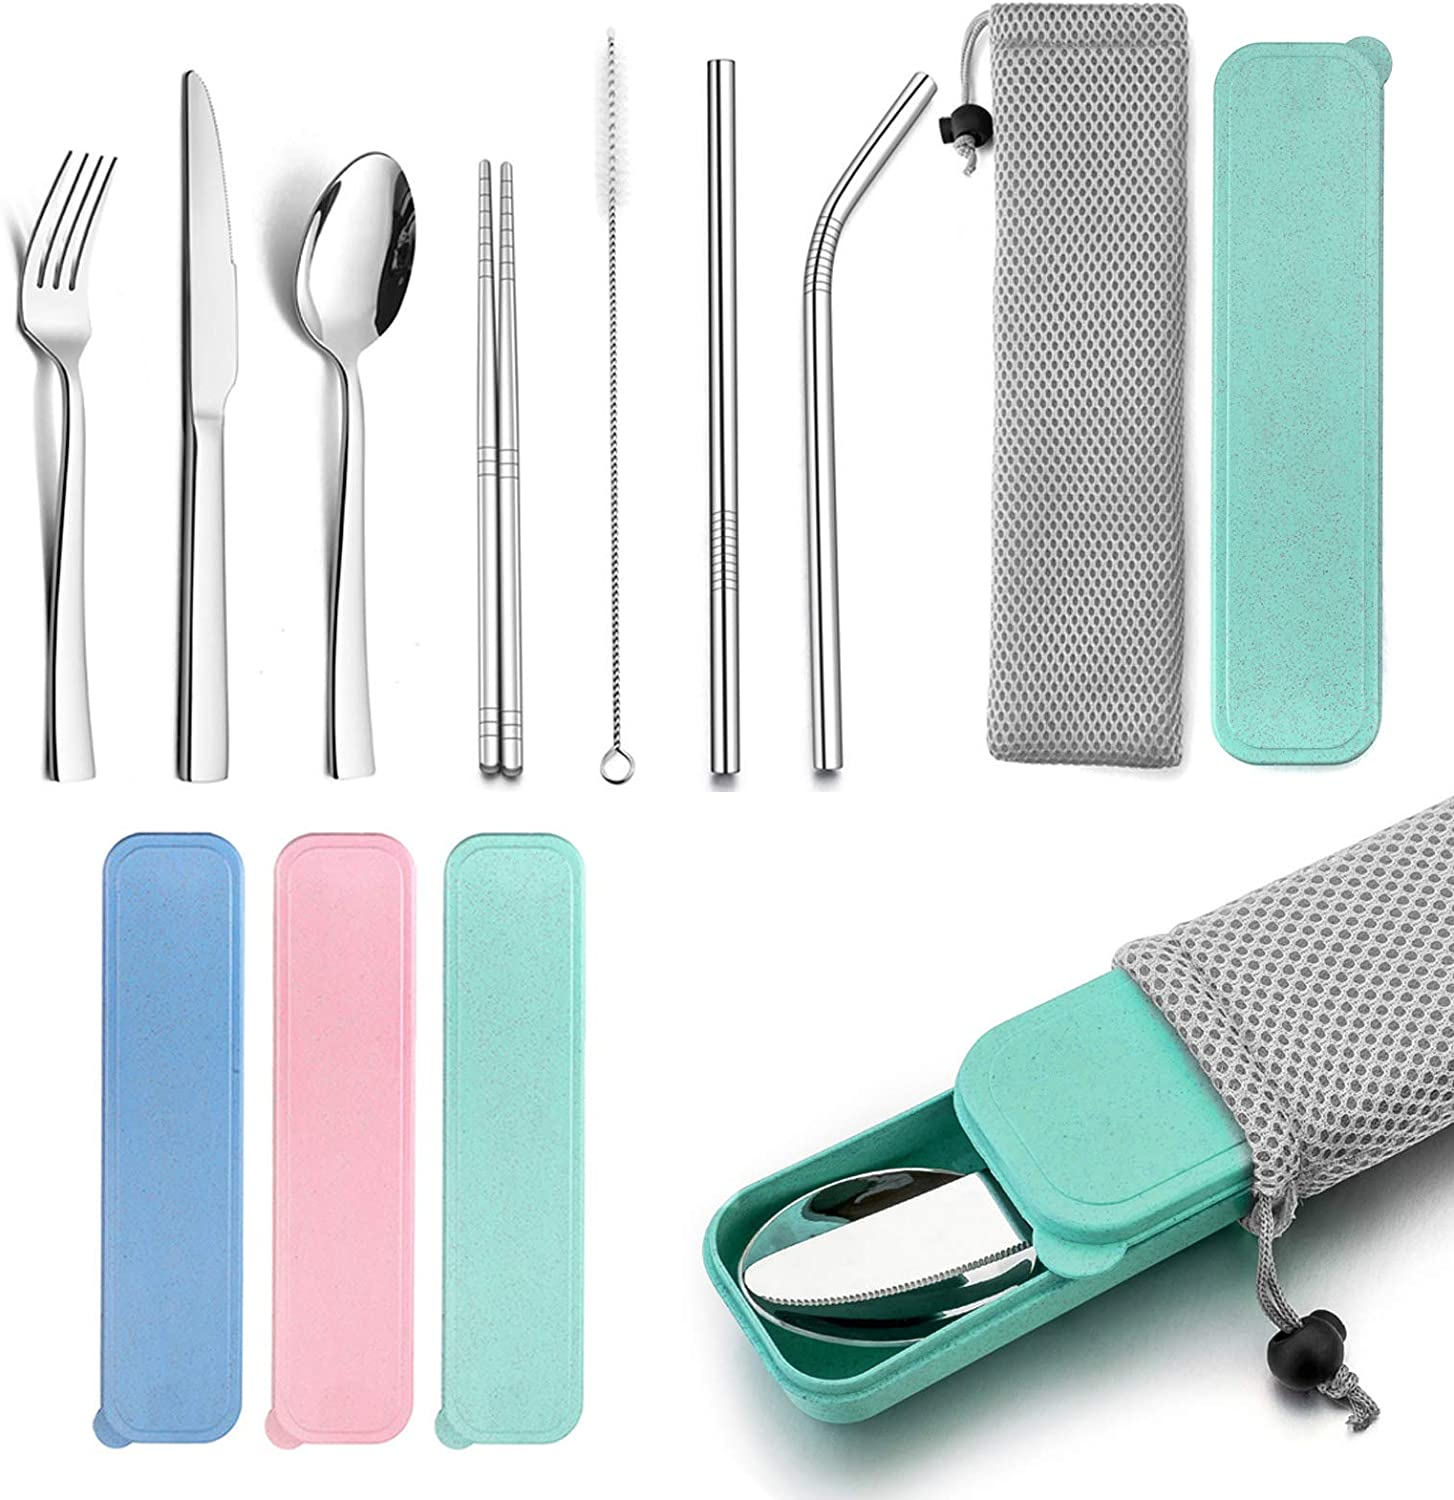 Portable Travel Utensils with Case, HaWare Stainless Steel Silverware Set for Camping Office School Lunch, Including Knife Fork Spoon Chopsticks, Reusable and Dishwasher Safe(Green)